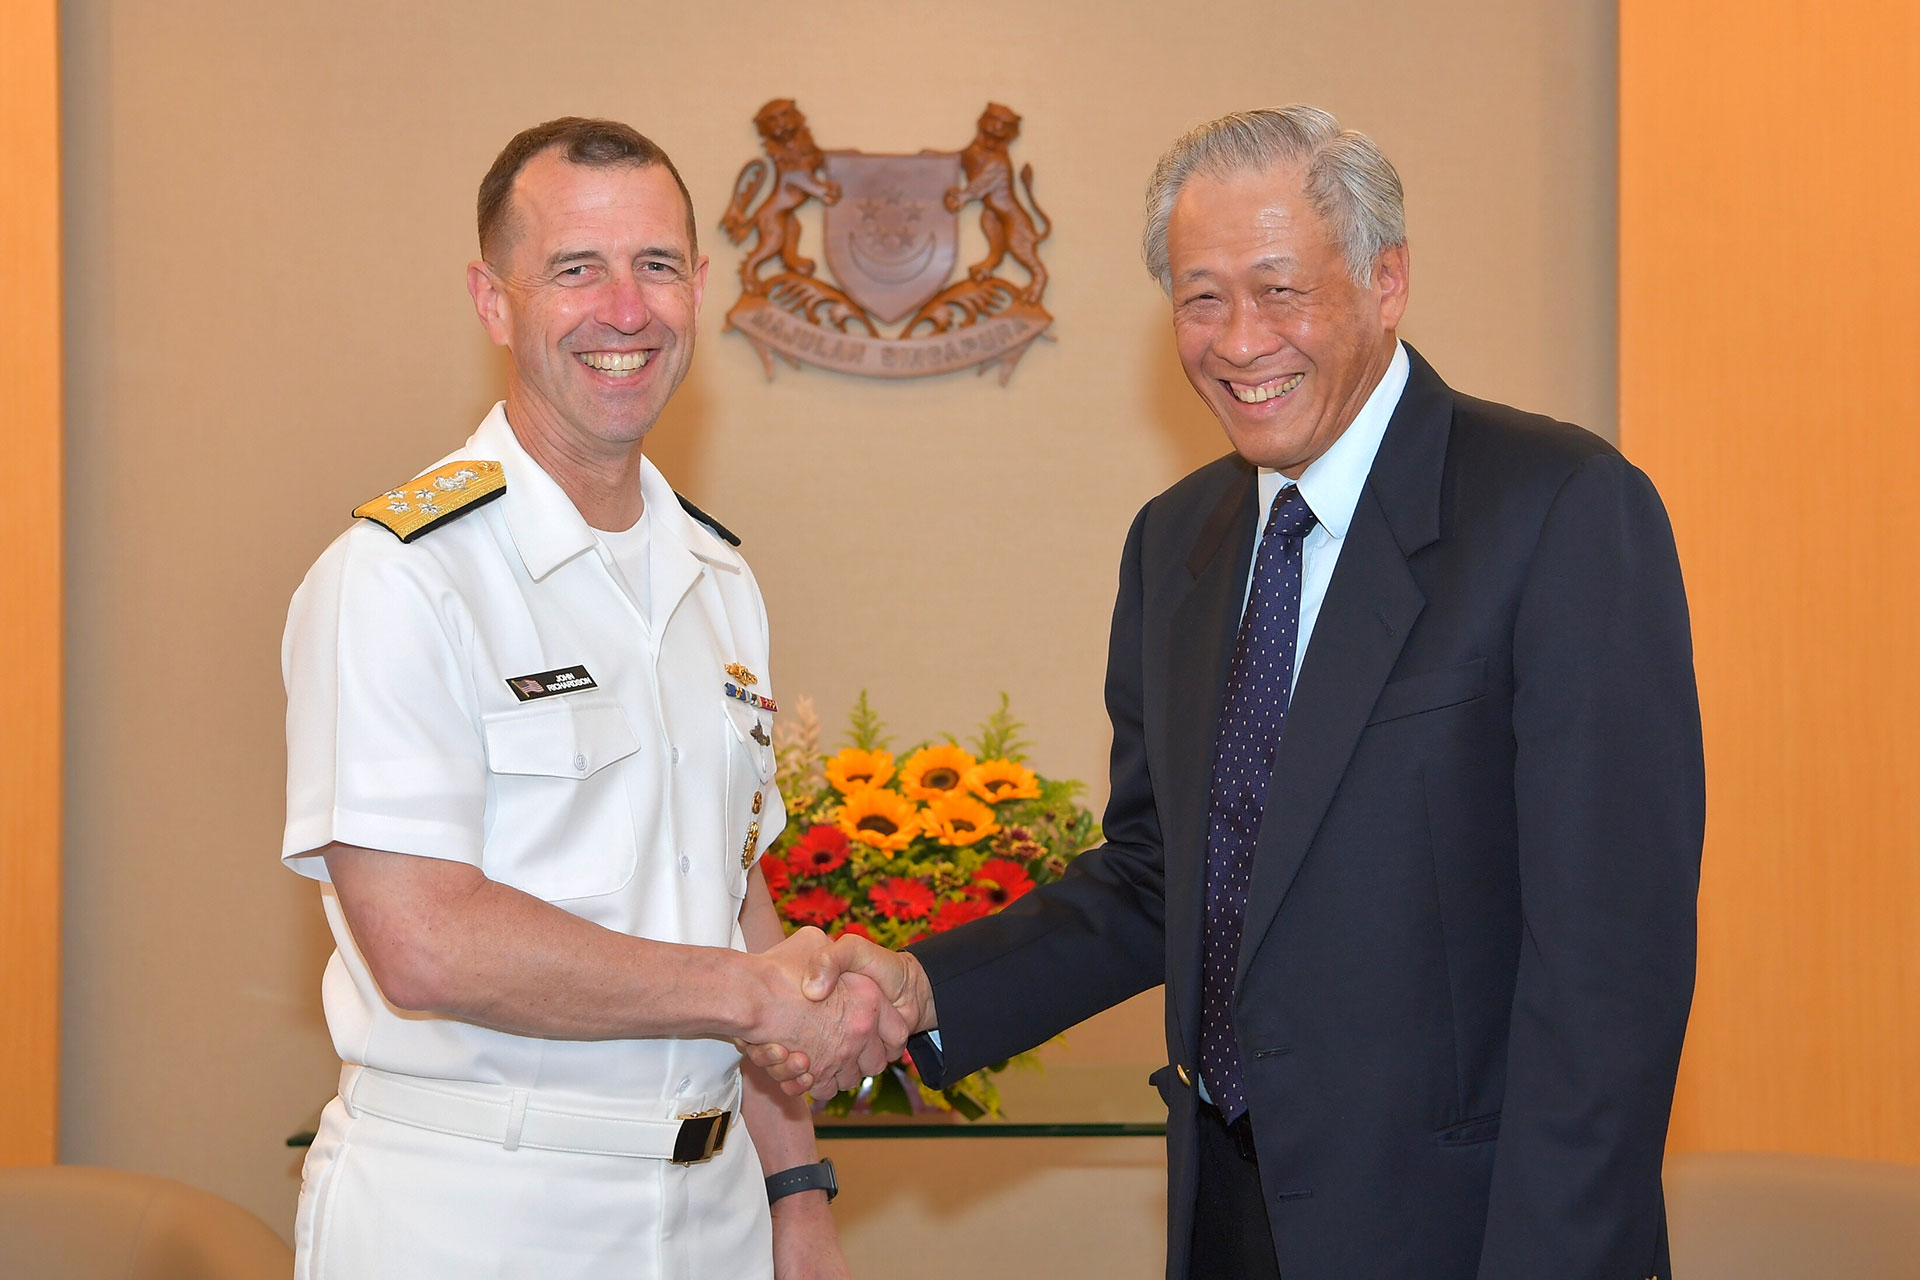 The United States' Chief of Naval Operations Admiral John M. Richardson (left) calling on Minister for Defence Dr Ng Eng Hen (right) at the Ministry of Defence this afternoon.